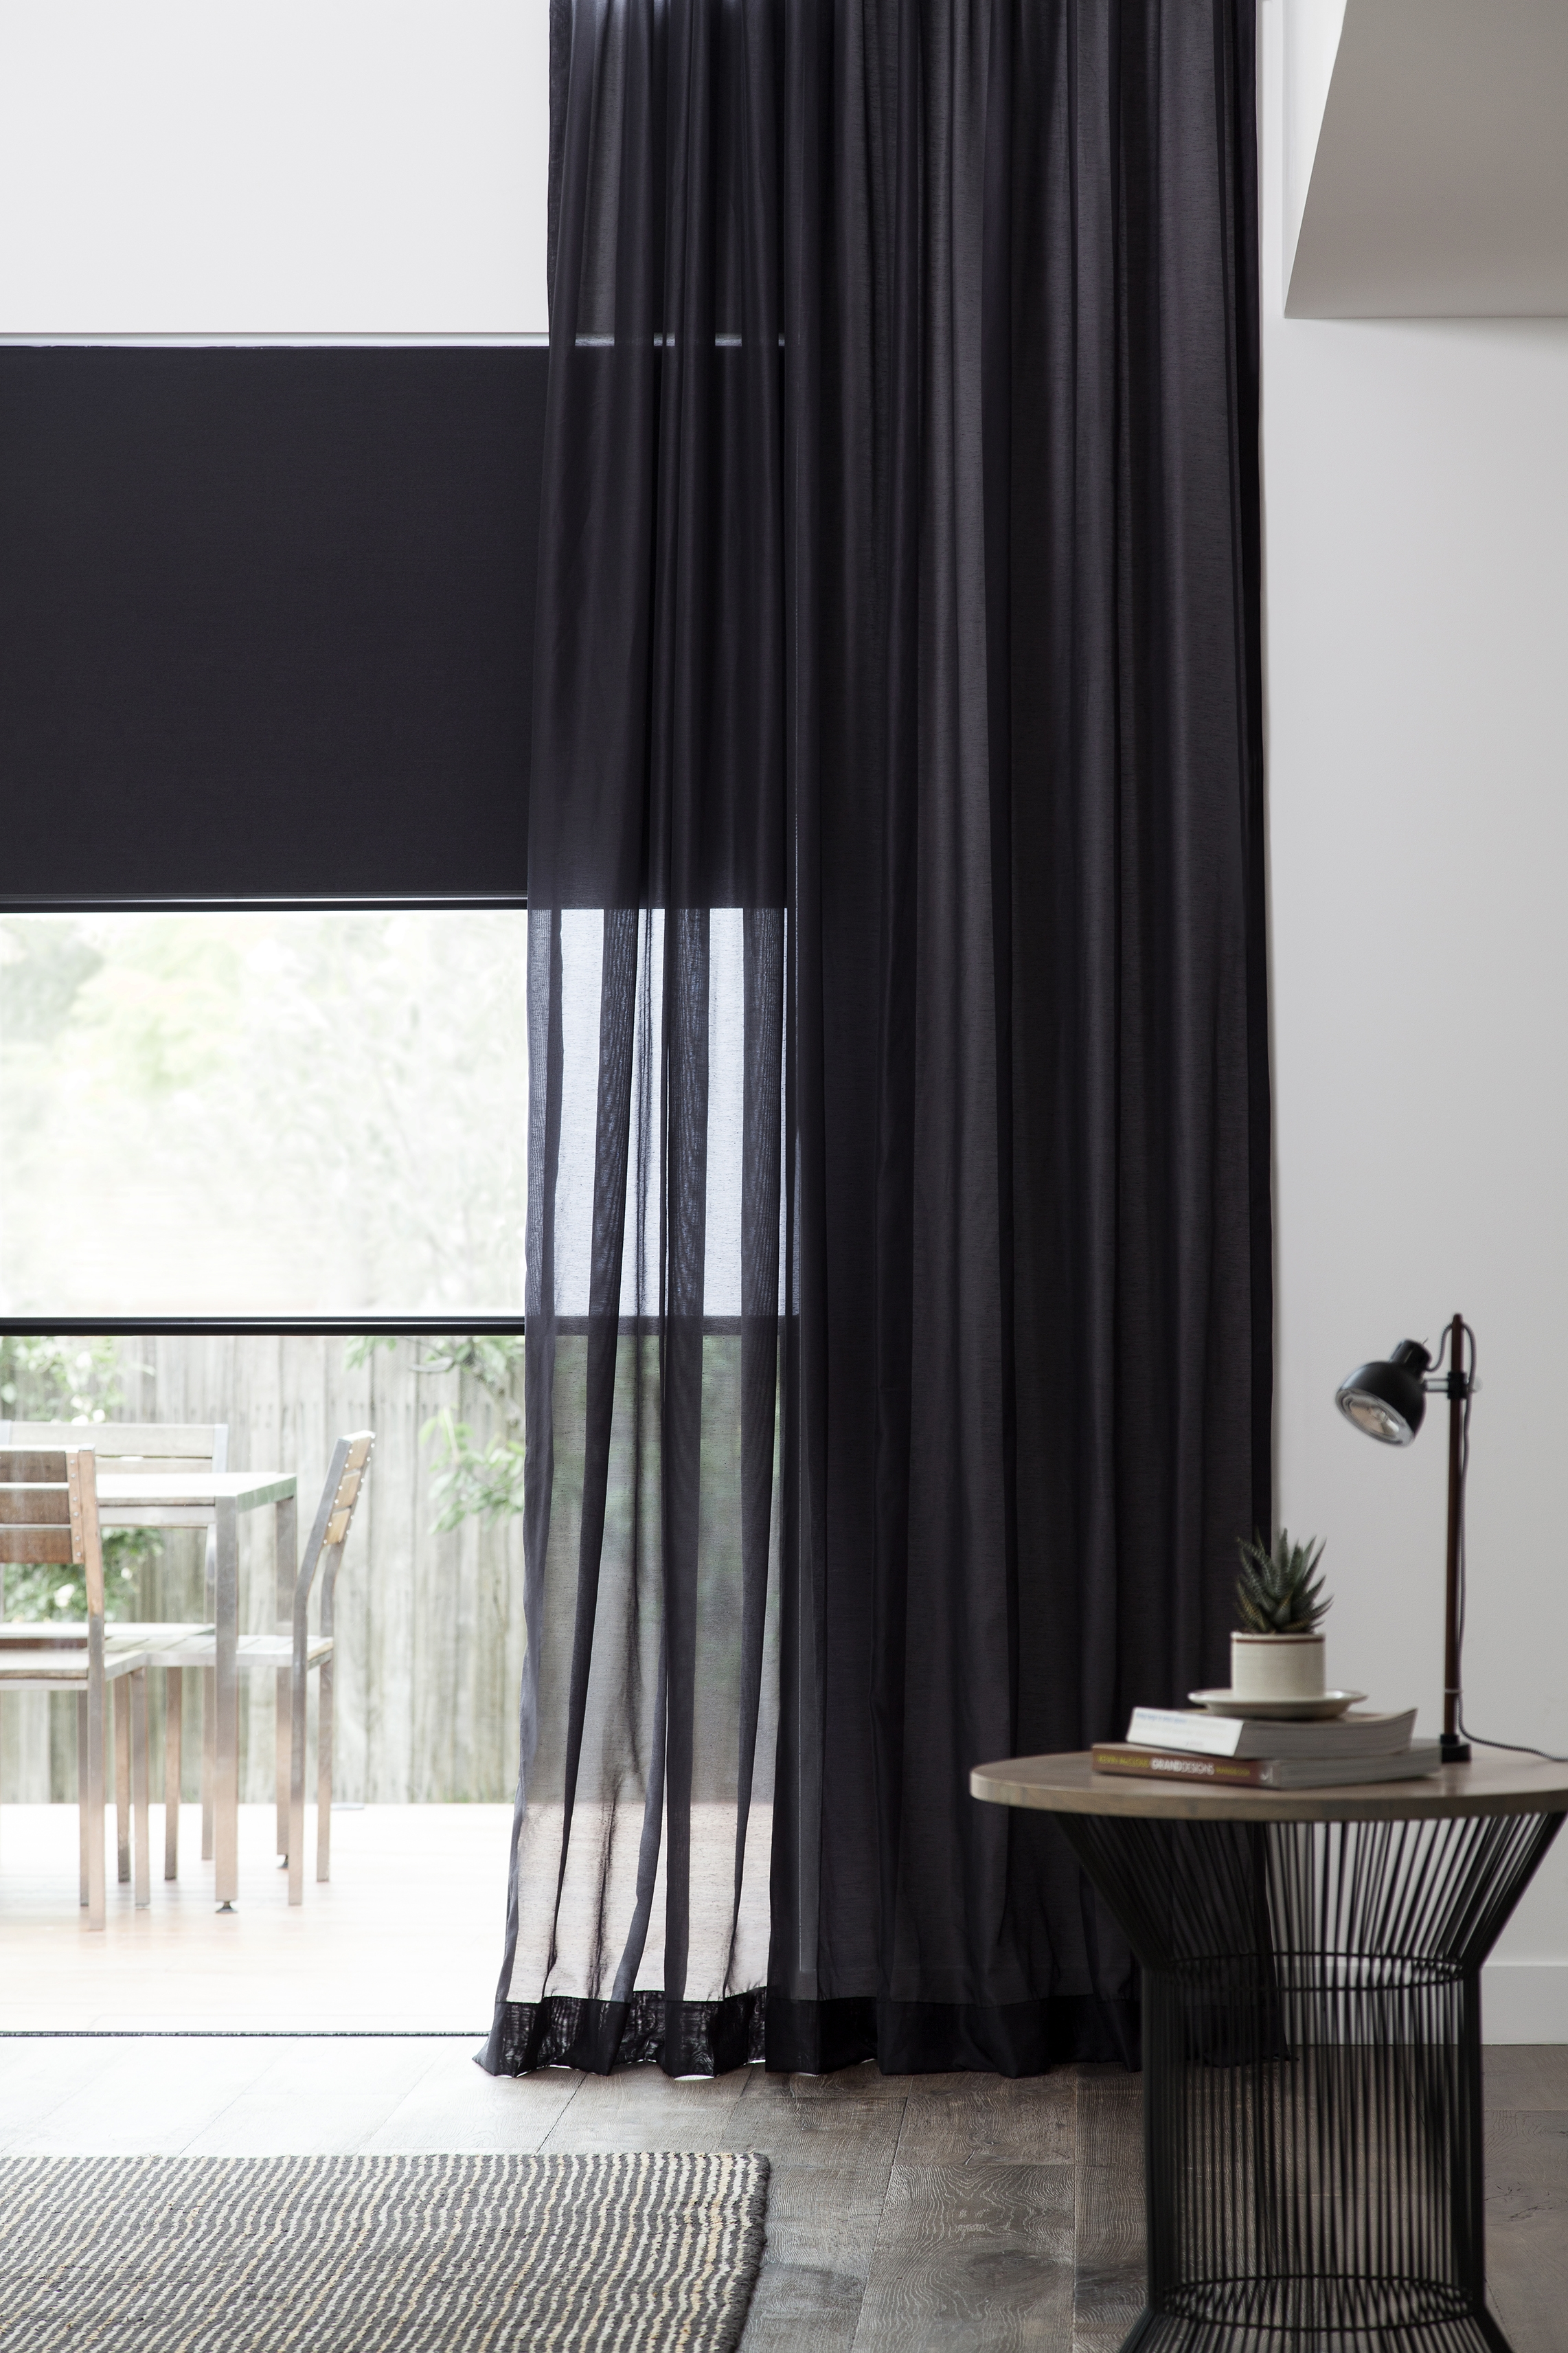 Bristol Pinch Pleat Sheer Curtains Grey Blinds Curtains Pertaining To Luxury Blinds And Curtains (Image 4 of 15)